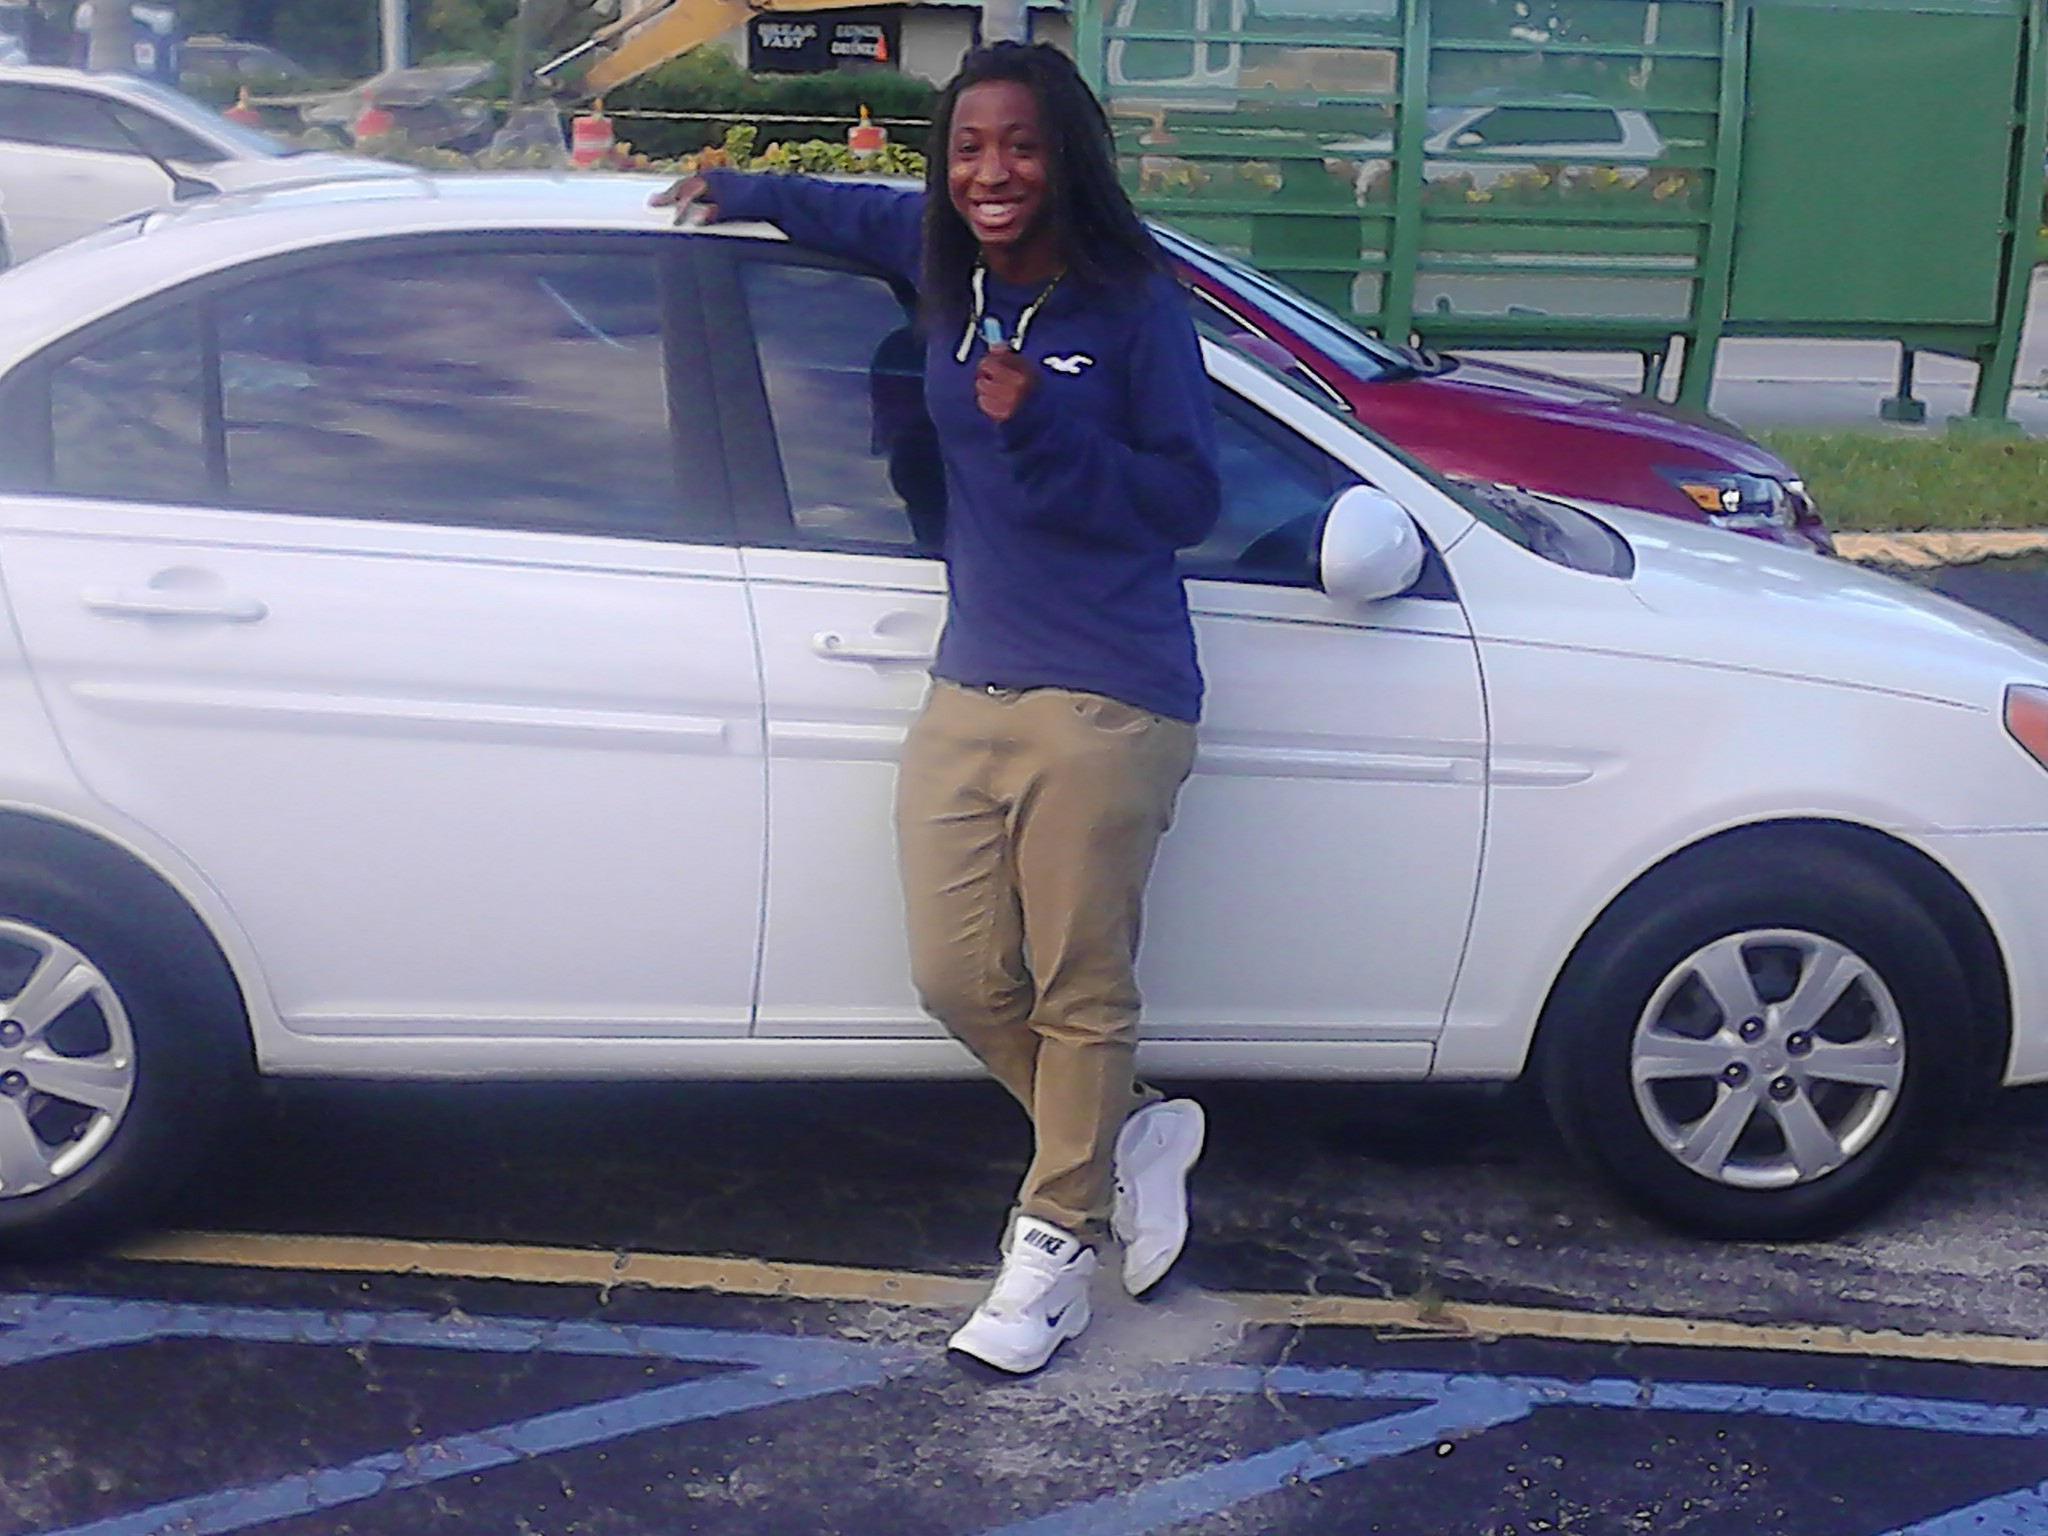 Congratulations ! Another Happy Ur Auto Advisor Customer In 24 hrs I found Cannie Thomas for her Daughter A 2008 Hyundai Accent White auto a/c am/fm/cd 57k low miles one owner for $5400